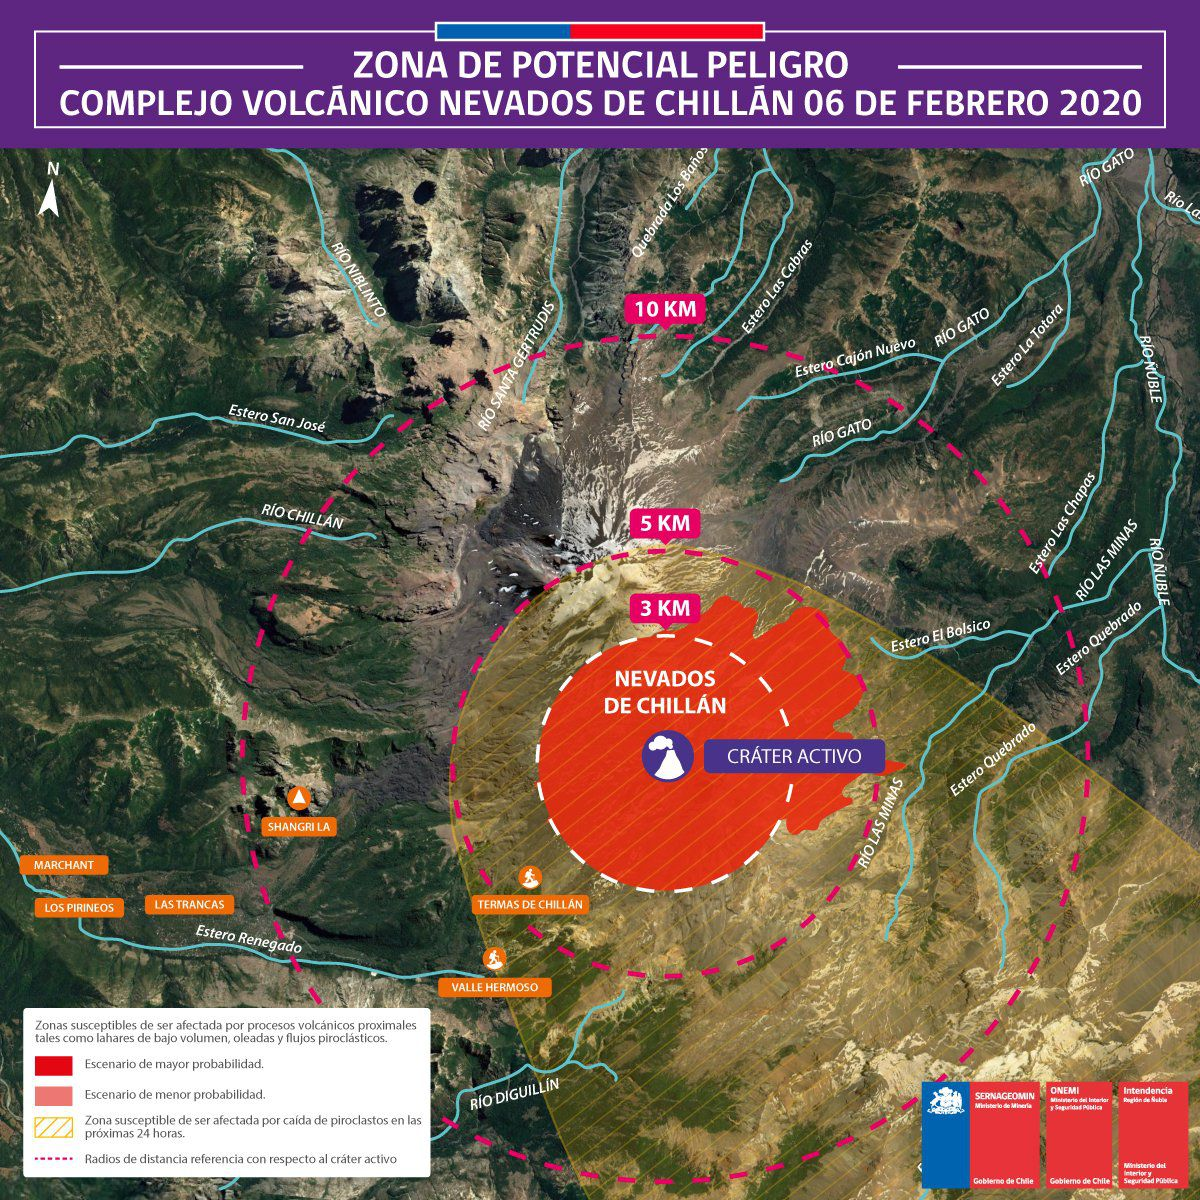 On February 7 at 8:07 p.m. local / 11:07 p.m. UTC the seismic stations of Nevados de Chillan recorded a volcano-tectonic earthquake of magnitude 3.1, associated with the fracture of rocks 1.6 km from the Nicanor crater, and a depth of 2, 7 km.  No change in surface activity was associated with this earthquake.  The technical alert level remains in Naranja    Sources: Sernageomin & Onemi